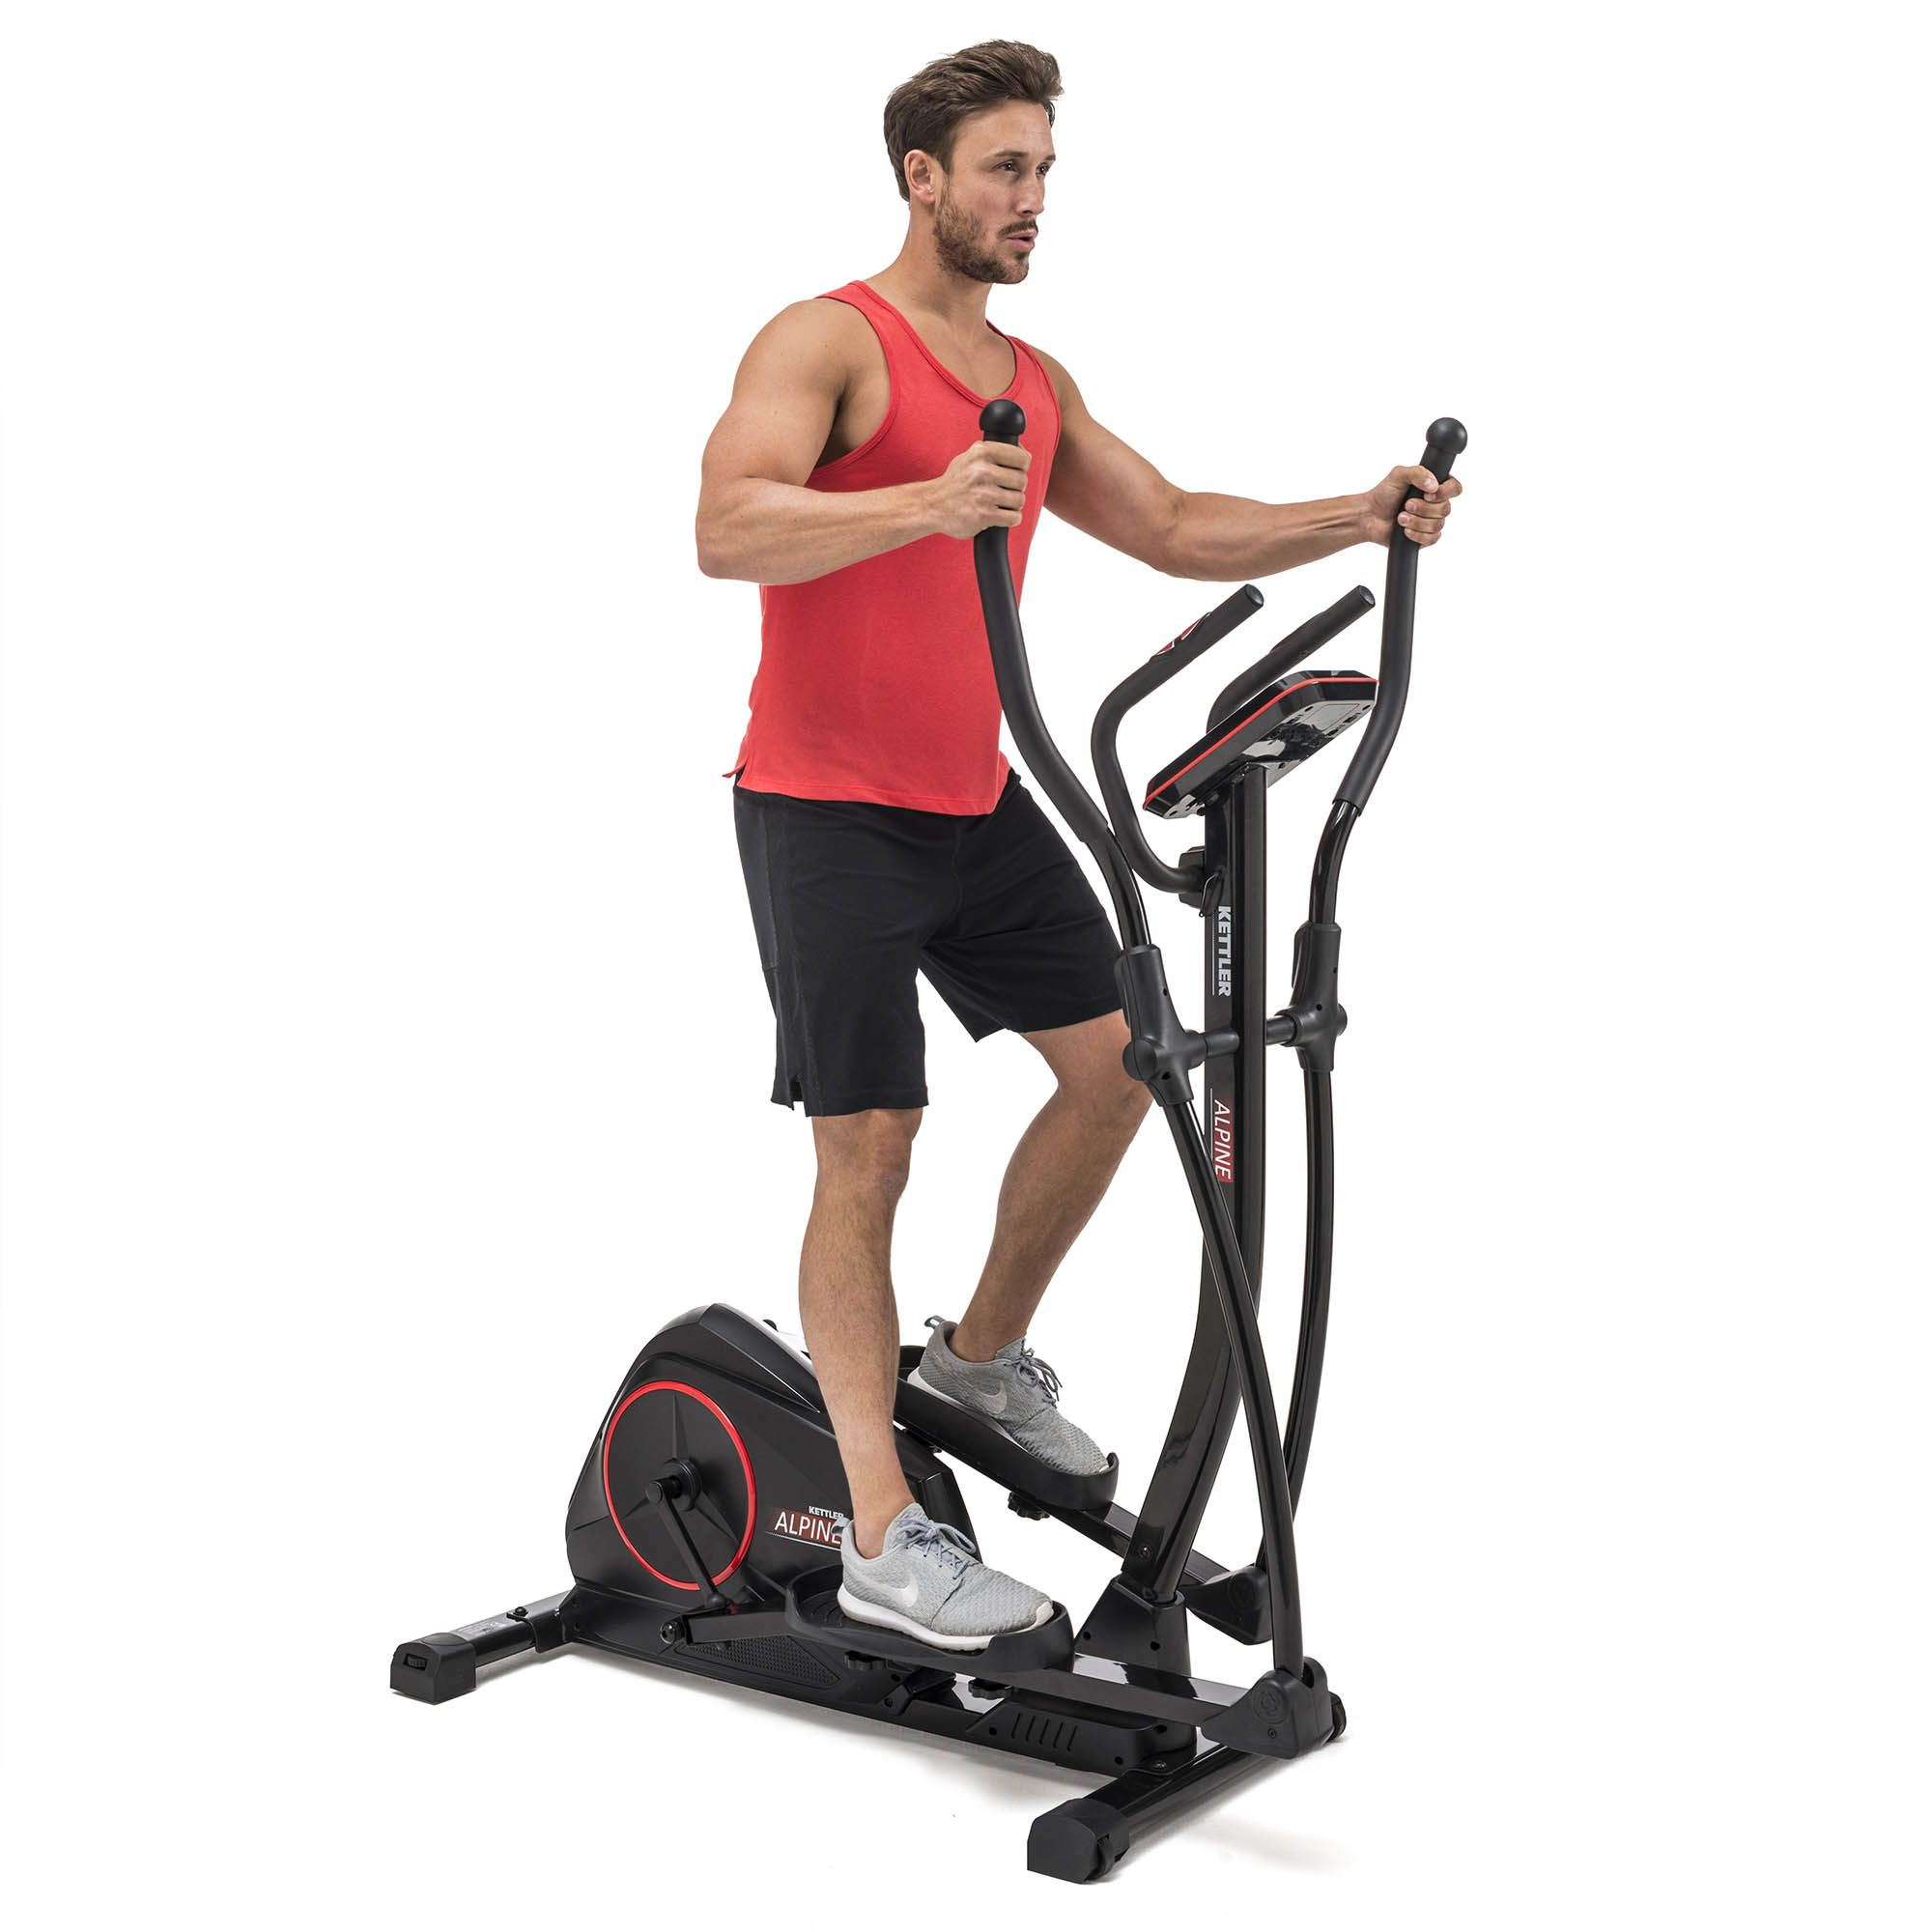 Kettler Fitness Brand New Kettler Alpine Cross Trainer Ebay